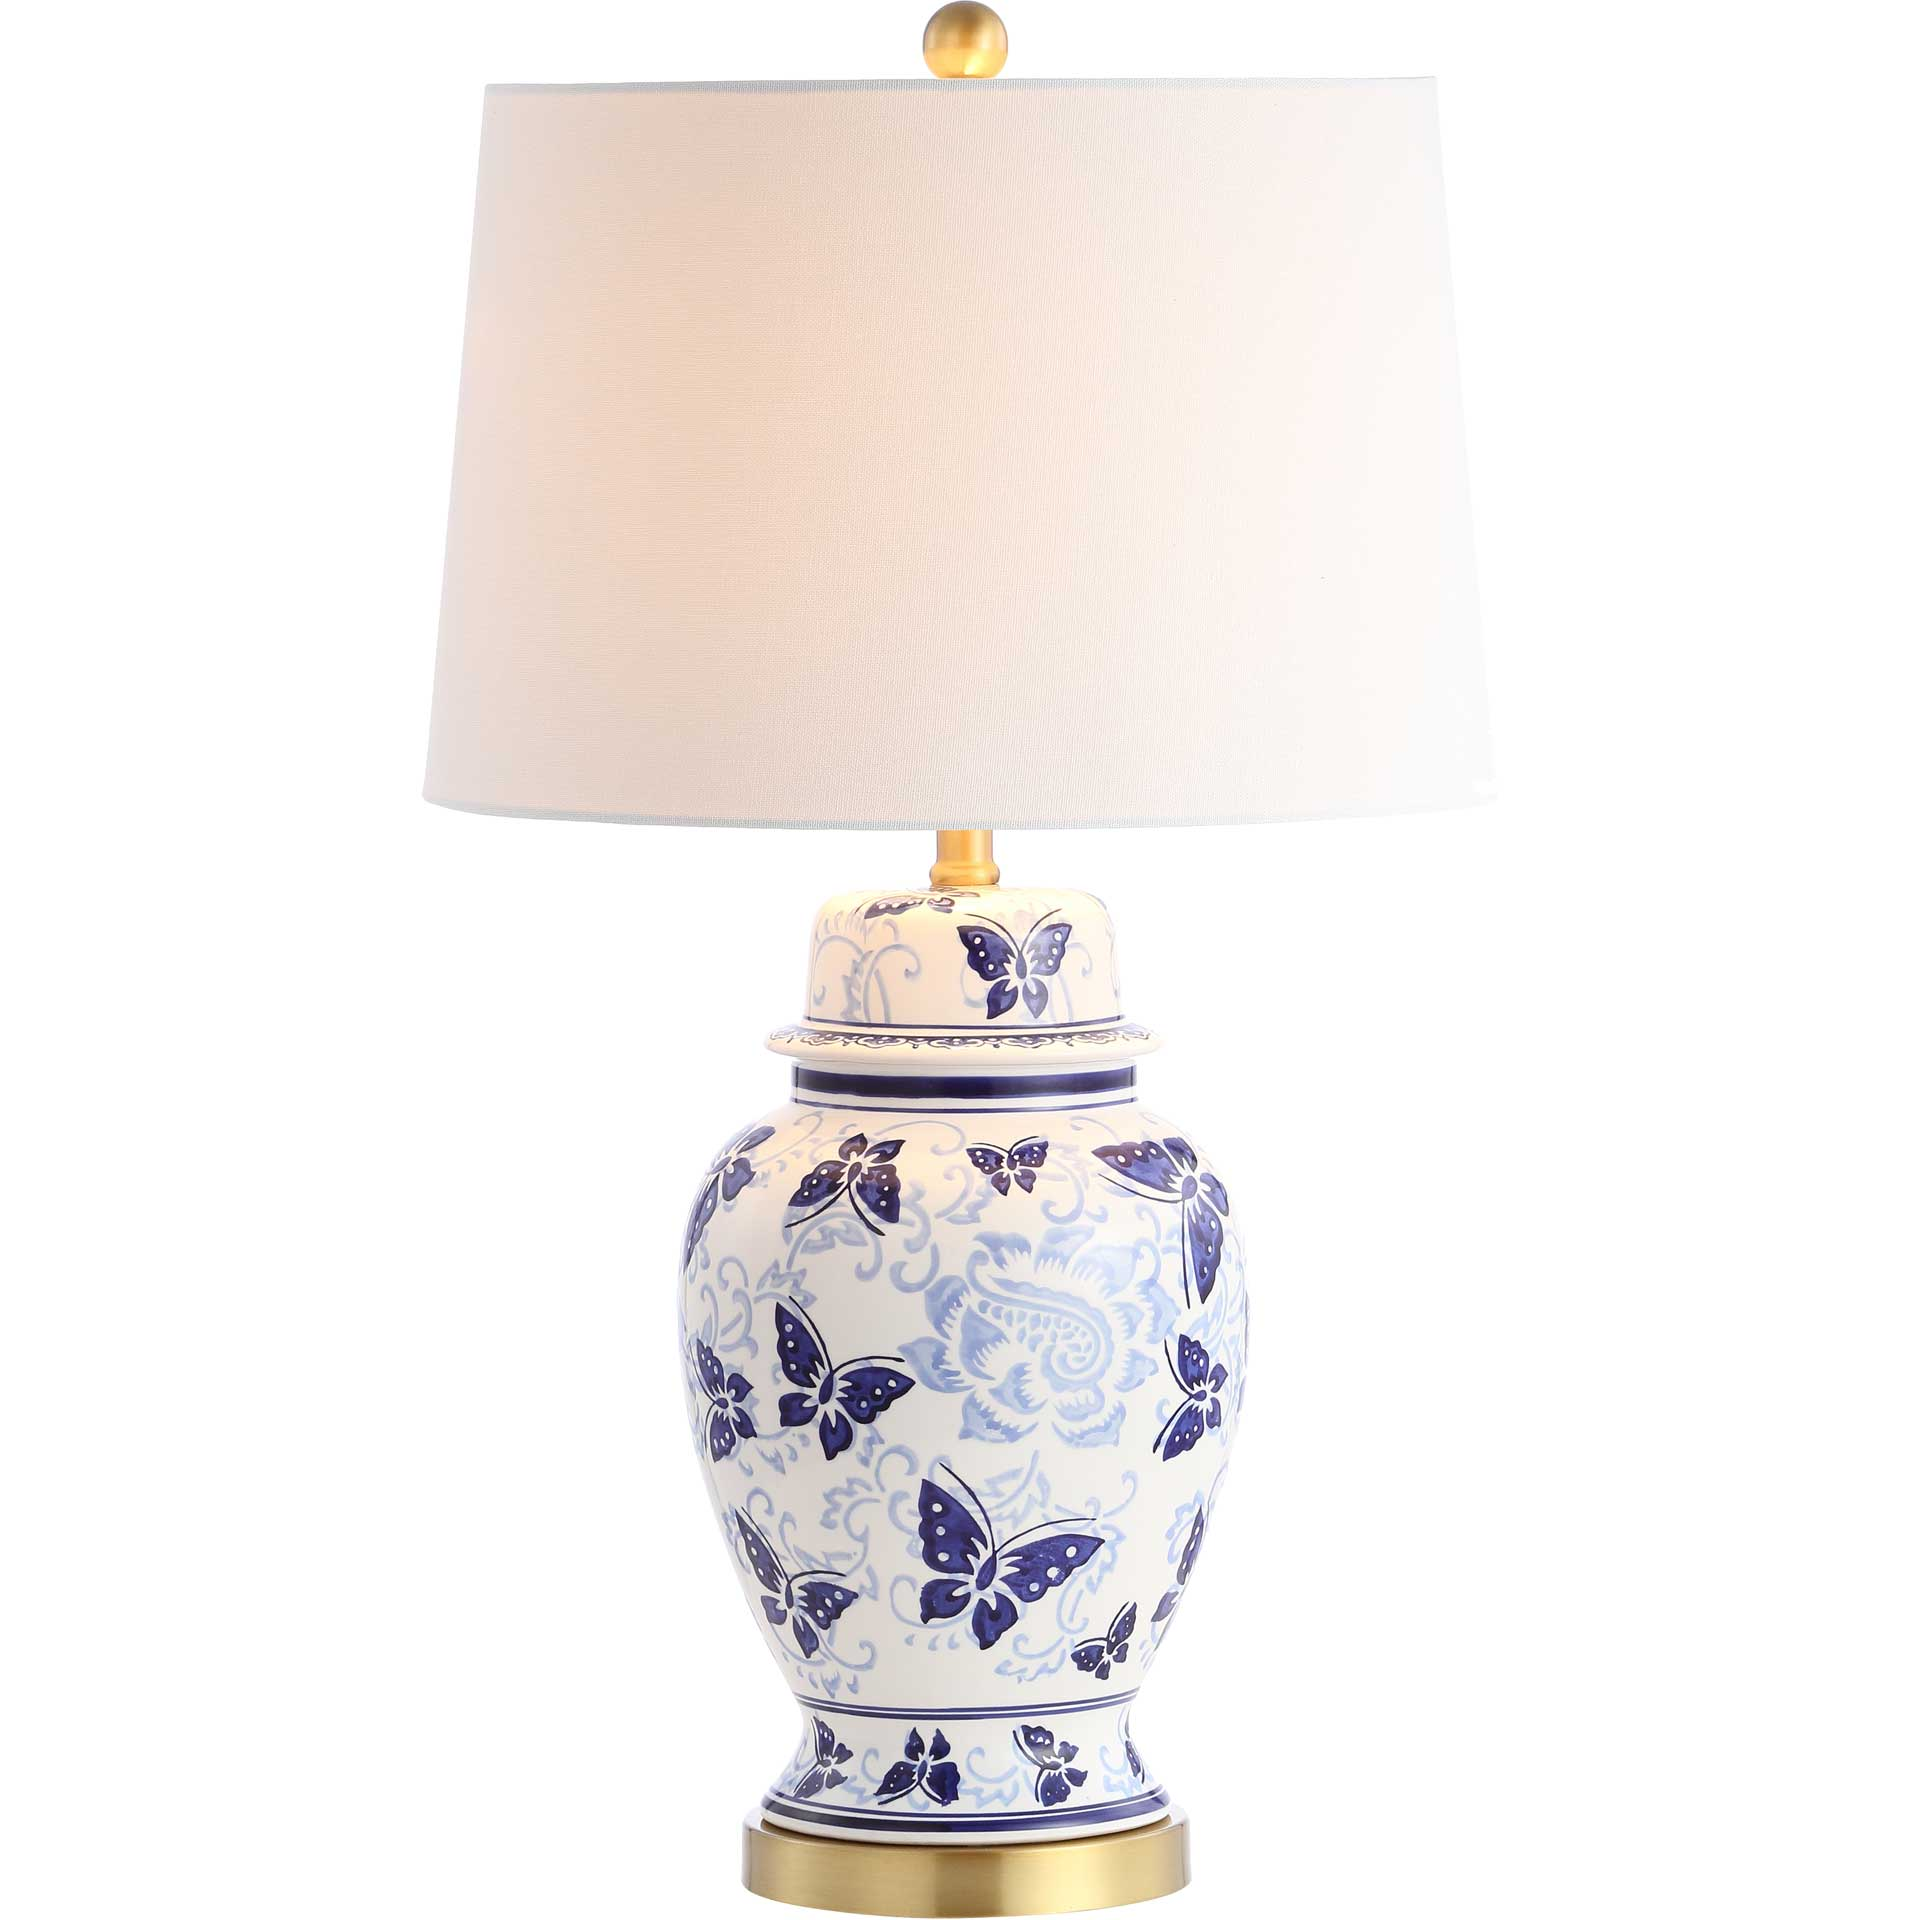 Hamdan Table Lamp Blue/White (Set of 2)